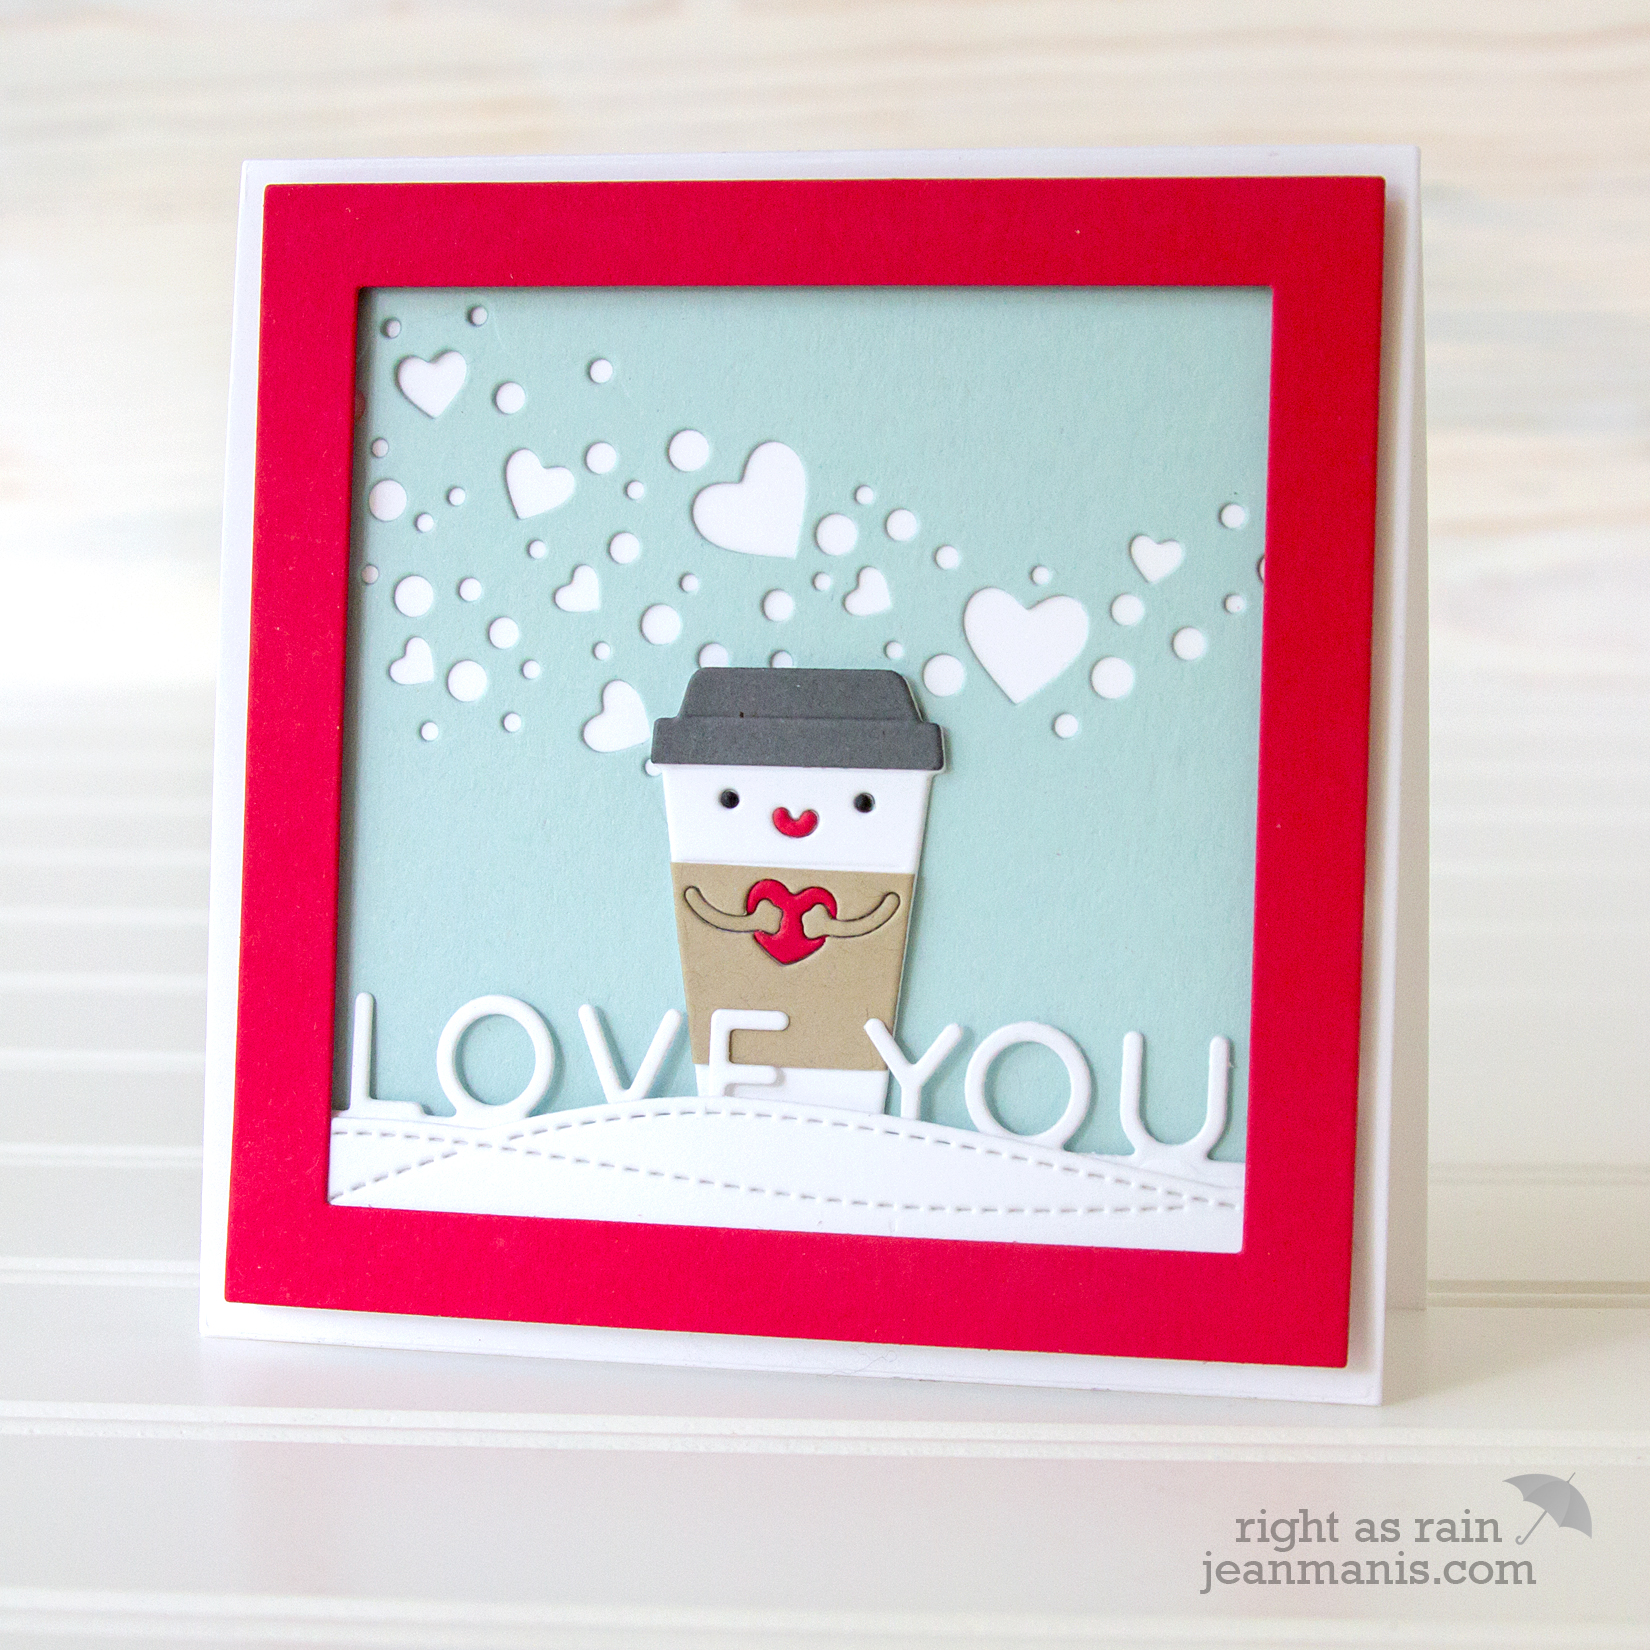 Simon Says Stamp - Die-cut Valentine